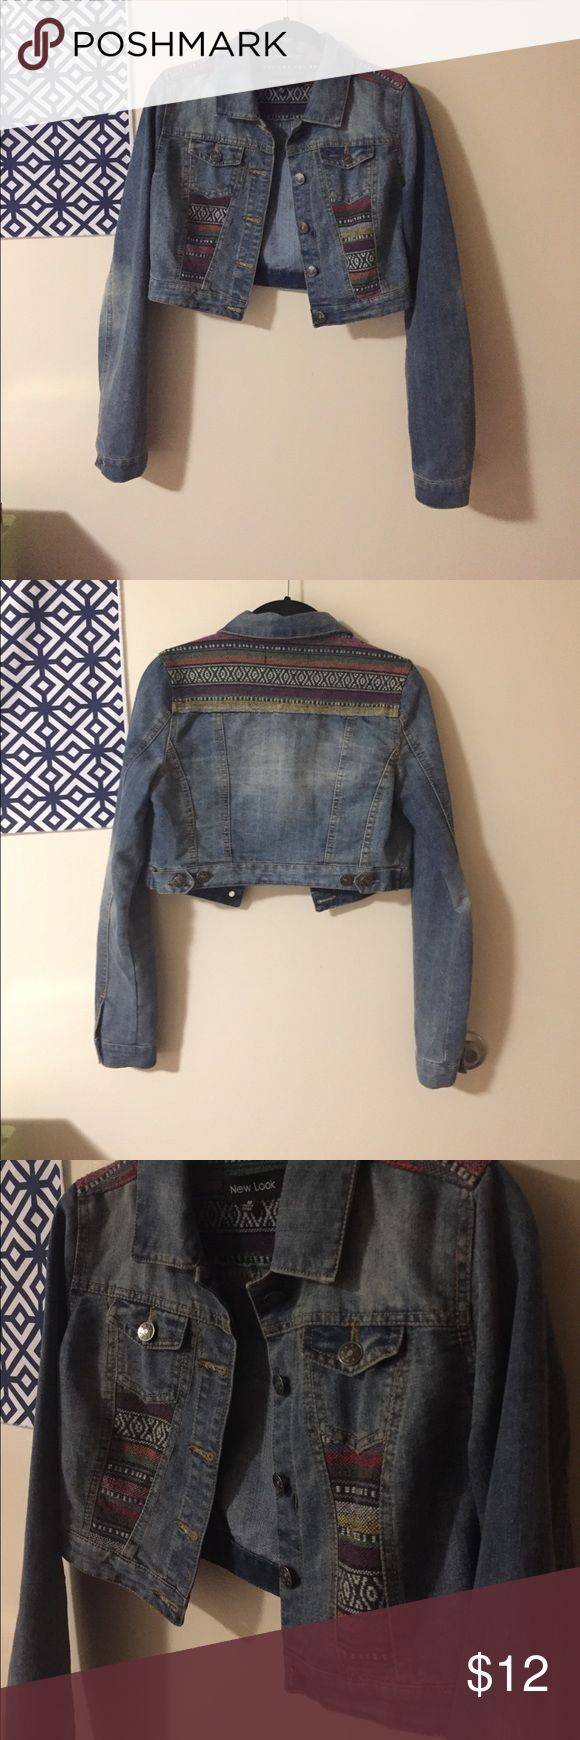 New Look crop jean jacket Love this jean jacket! Very cool tribal design on front panels and back shoulders. Last picture shows the length of the jacket! New Look Jackets & Coats Jean Jackets